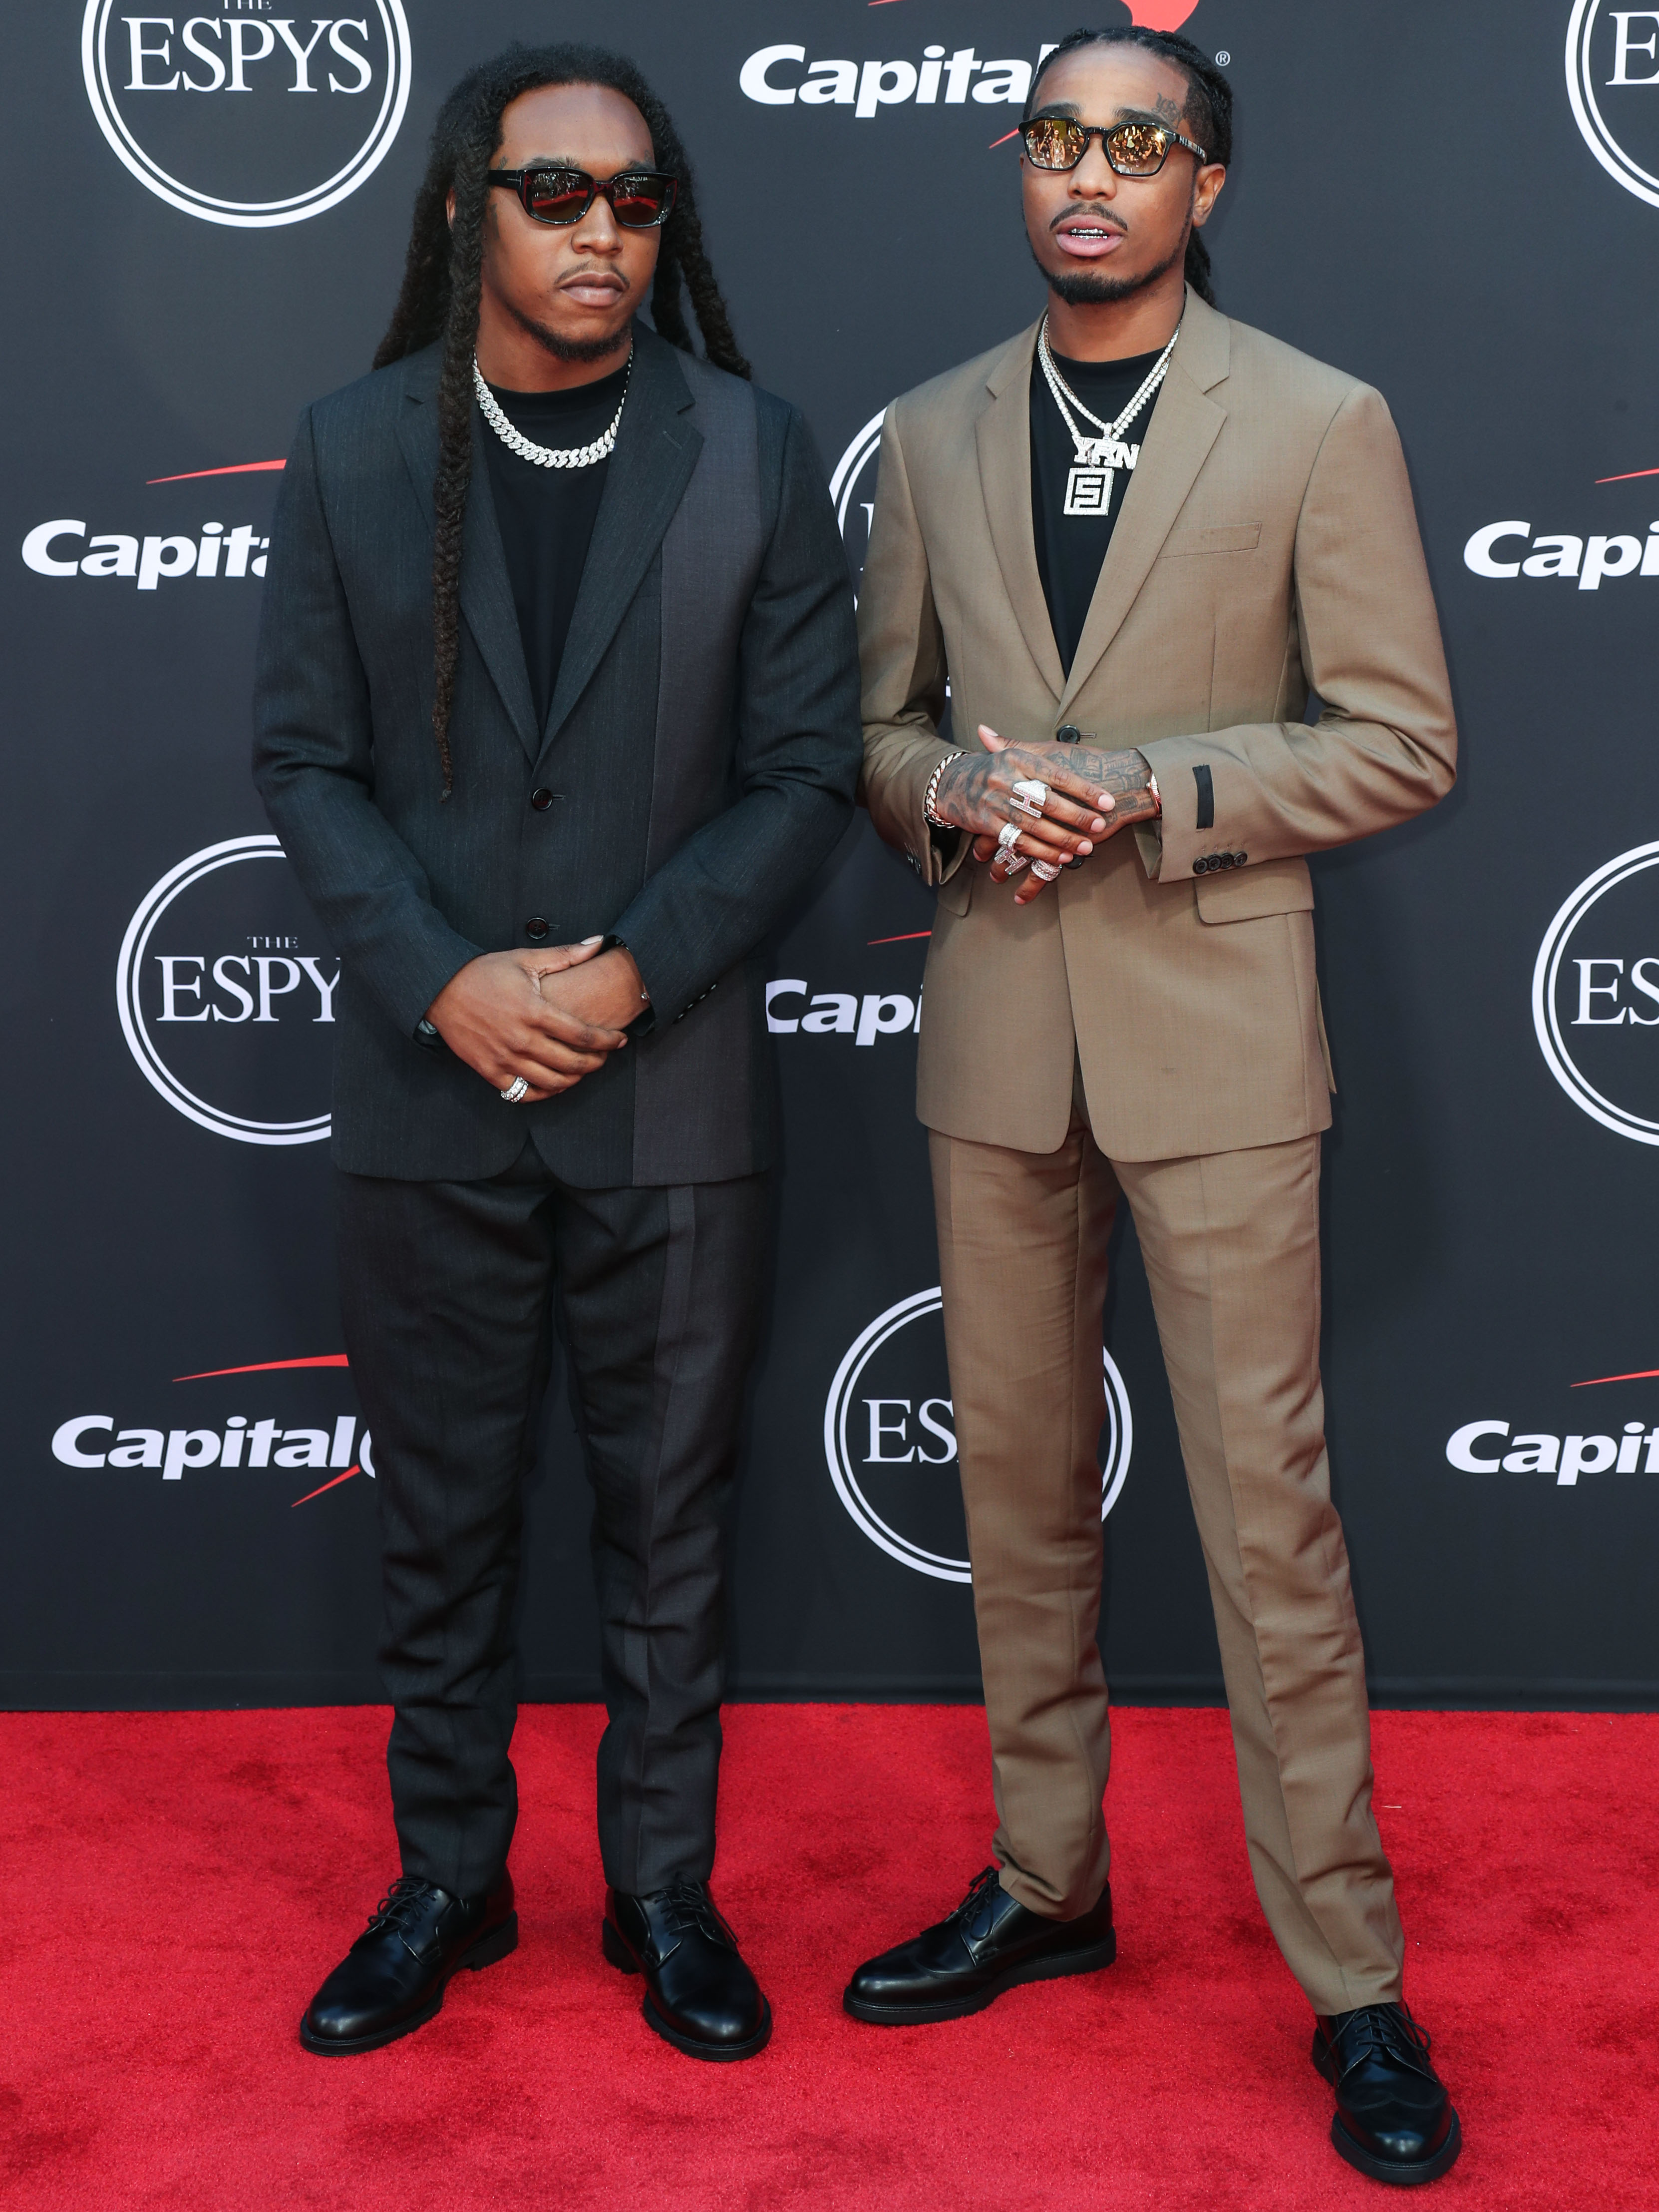 Takeoff and Quavo of Migos arrive at the 2019 ESPY Awards held at Microsoft Theater L.A. Live on July 10, 2019 in Los Angeles, California, United States. (Photo by Xavier Collin/Image Press Agency)